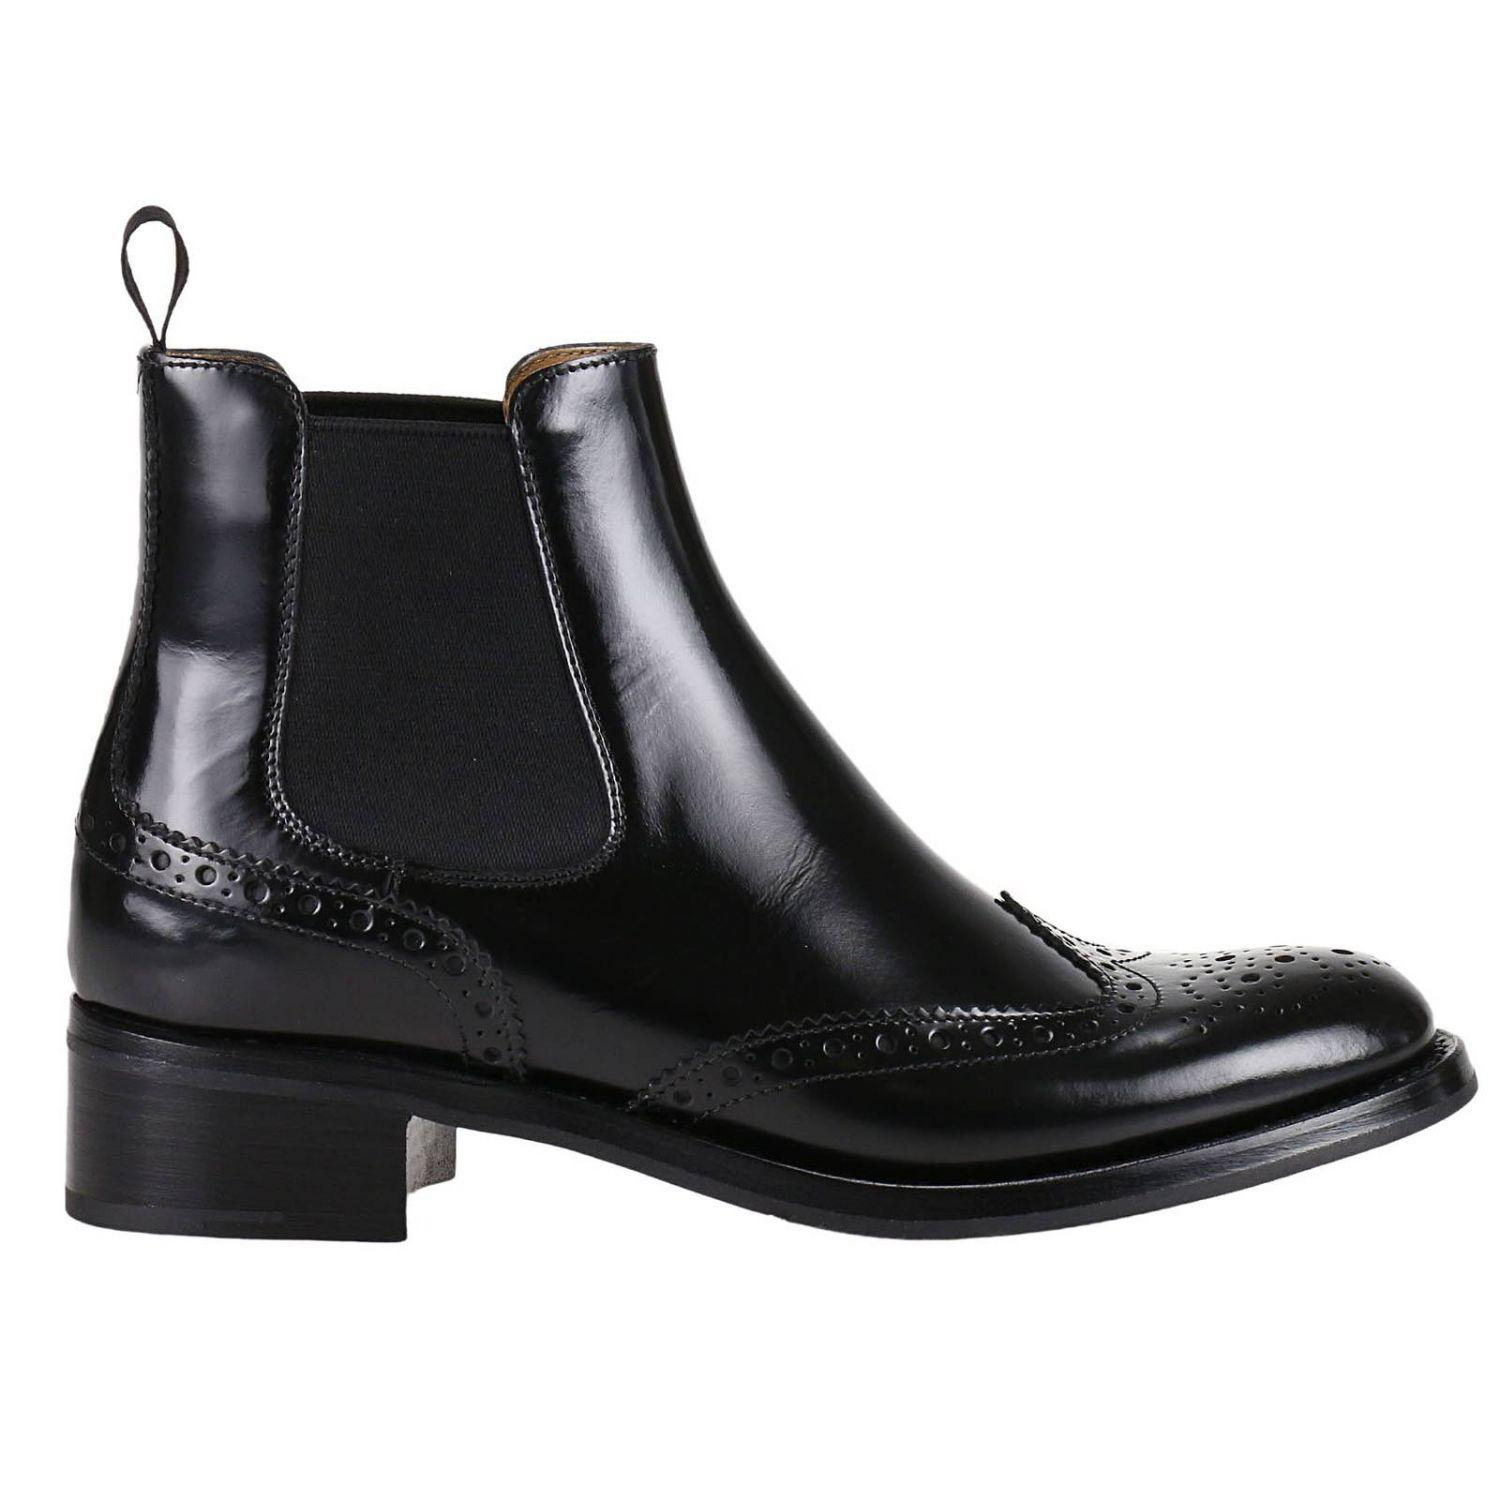 Church's 35MM ESTELLA BROGUE LEATHER ANKLE BOOTS tL7P8